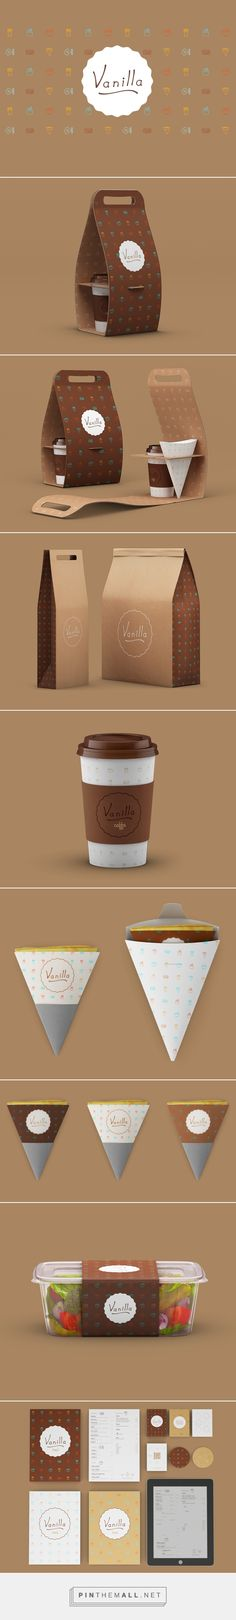 Vanilla identity packaging branding on Behance by Mario Dragic curated by Packaging Diva PD. A small food takeaway cafe where you can get great pancakes, sandwiches and salads.